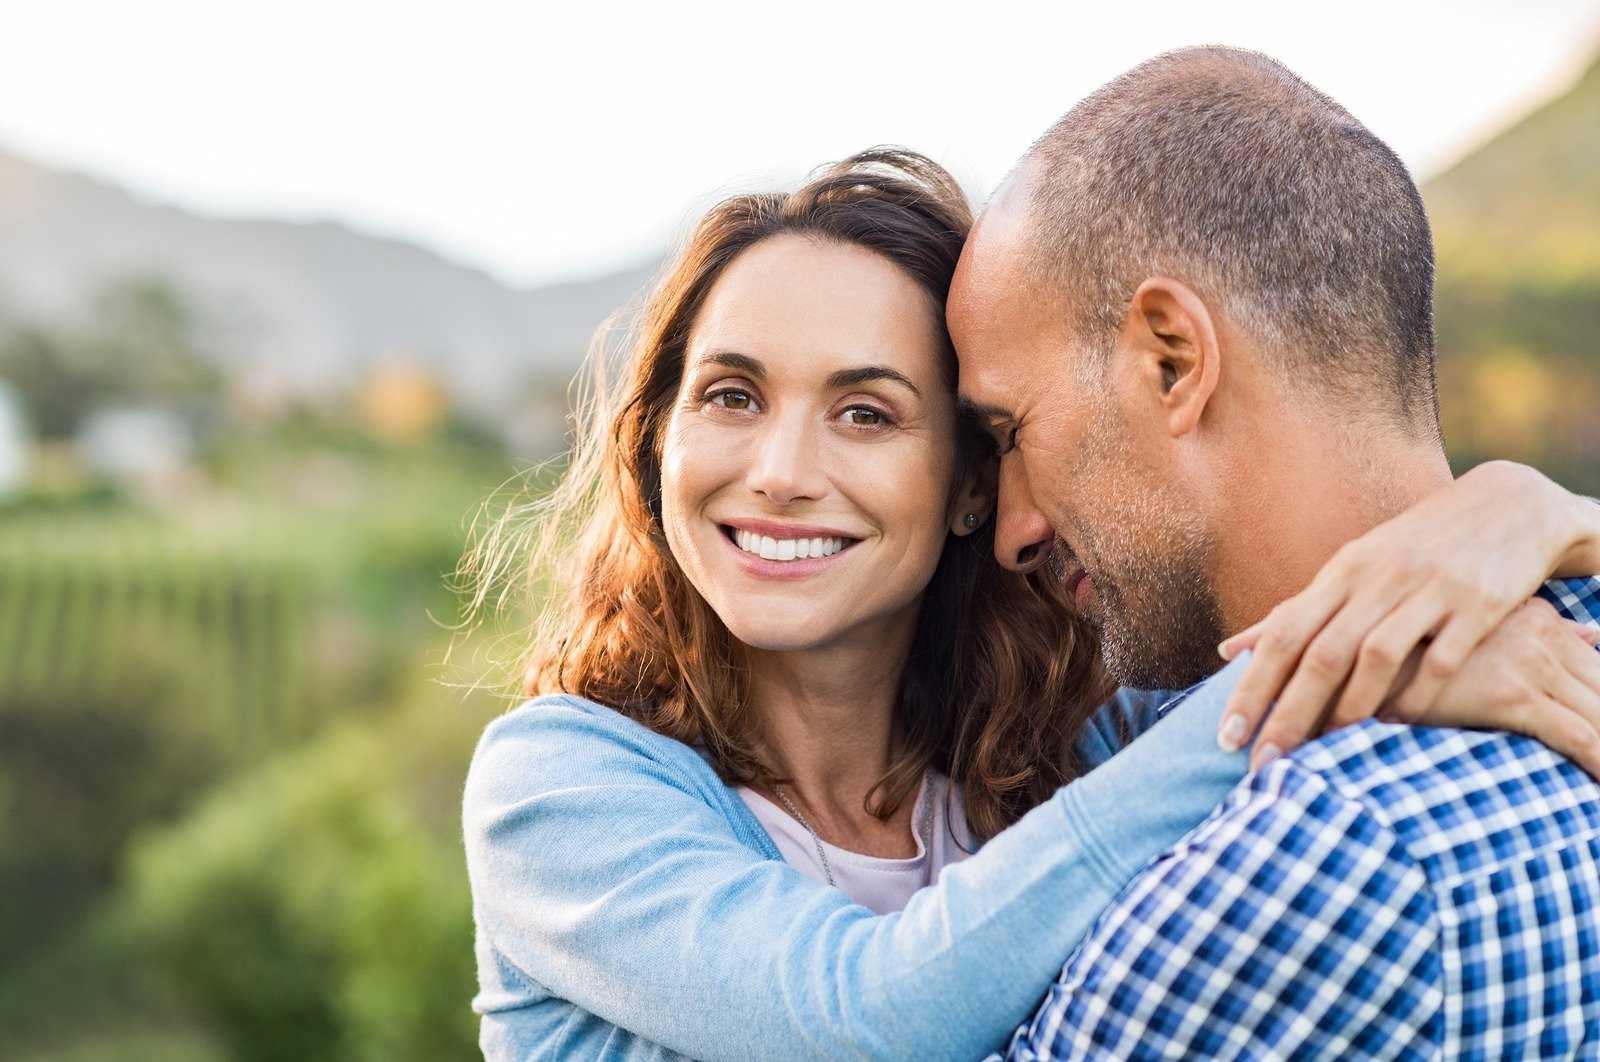 Mature romantic couple embracing outdoor. Happy woman embracing